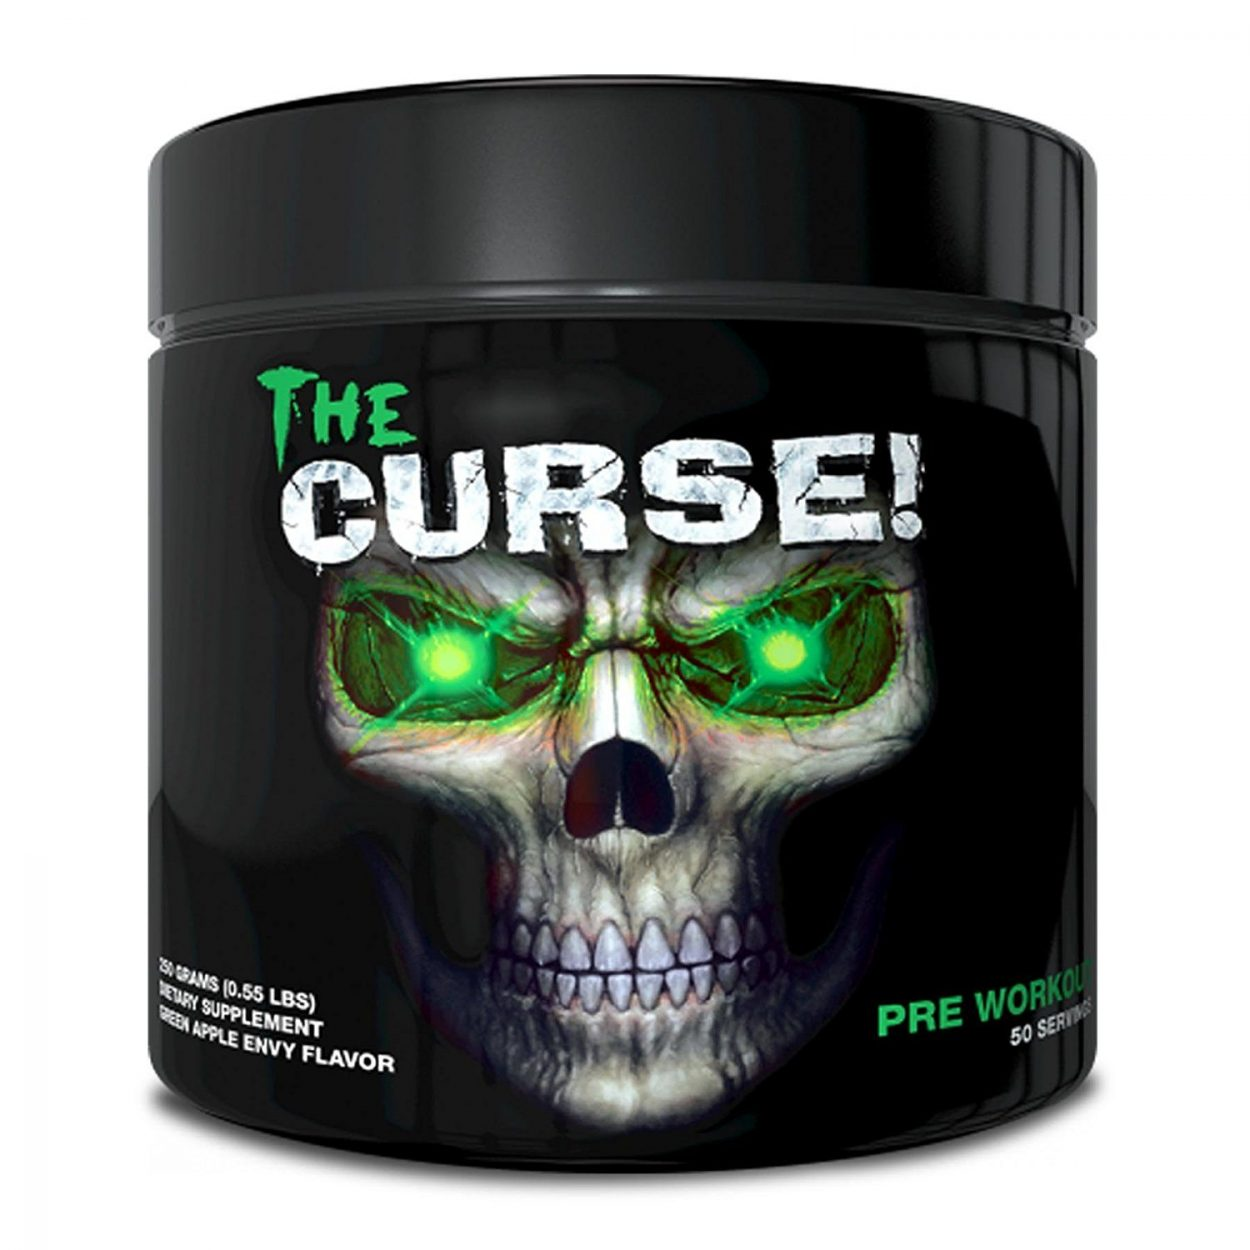 Cobra Labs The Curse Pre Workout - 250g - Green Apple Envy (50 Servings)